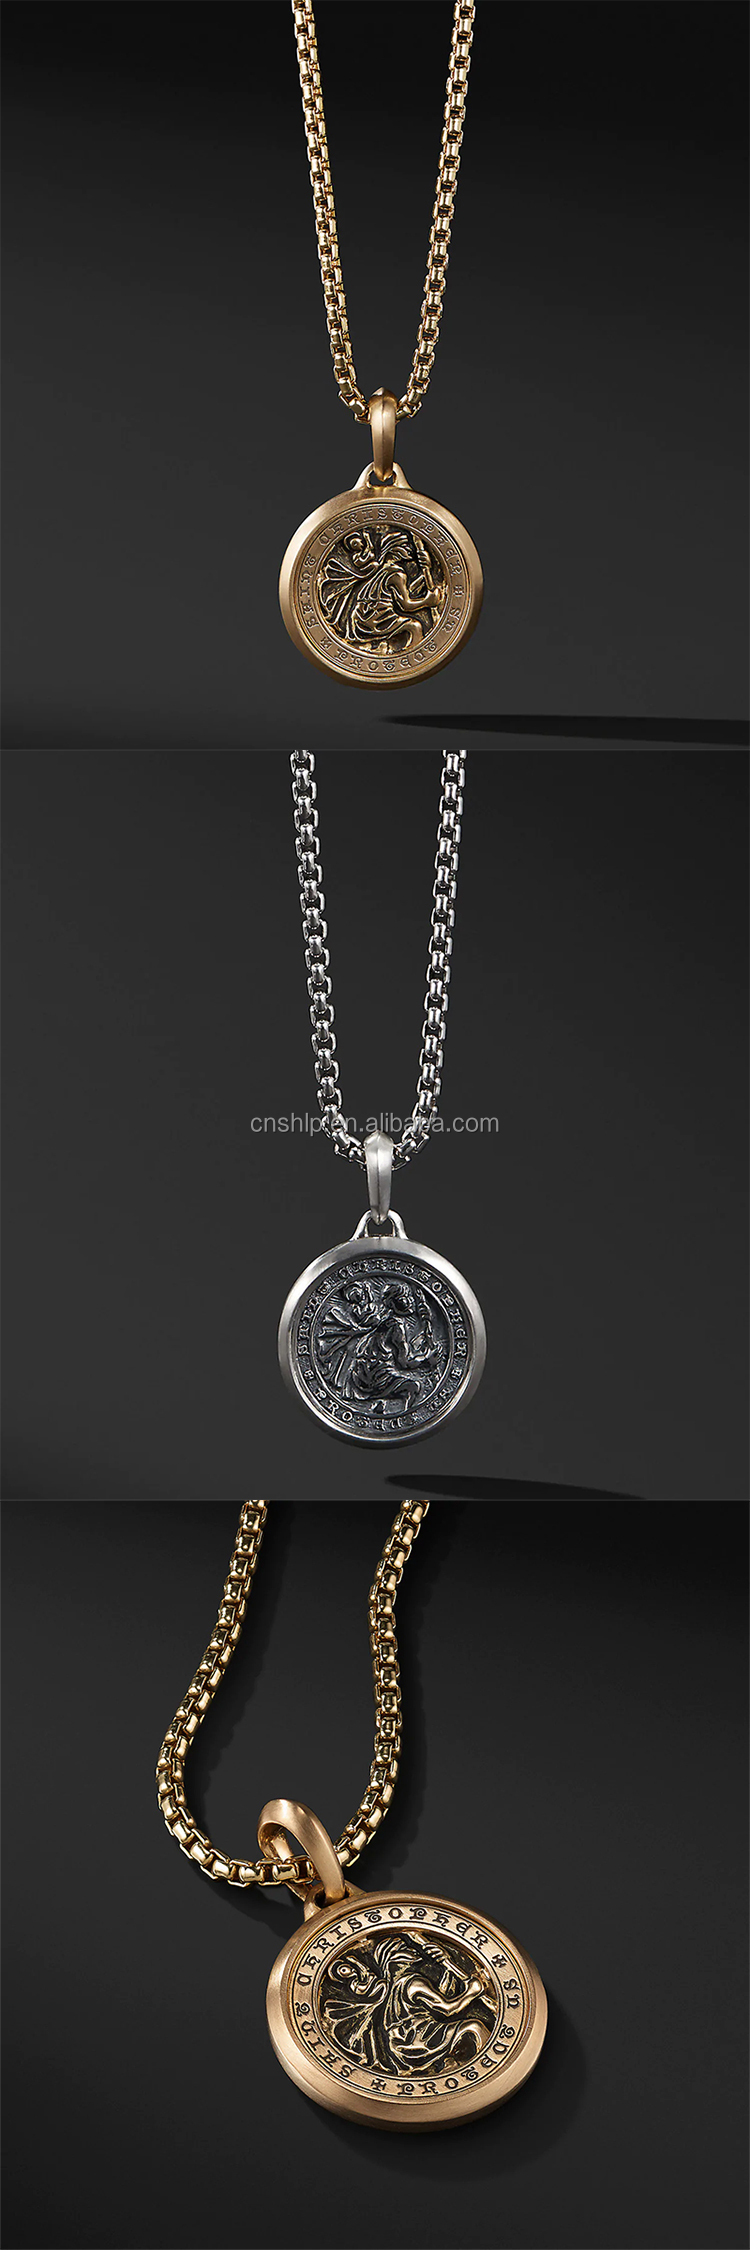 Custom your own metal women men charm pendant necklace